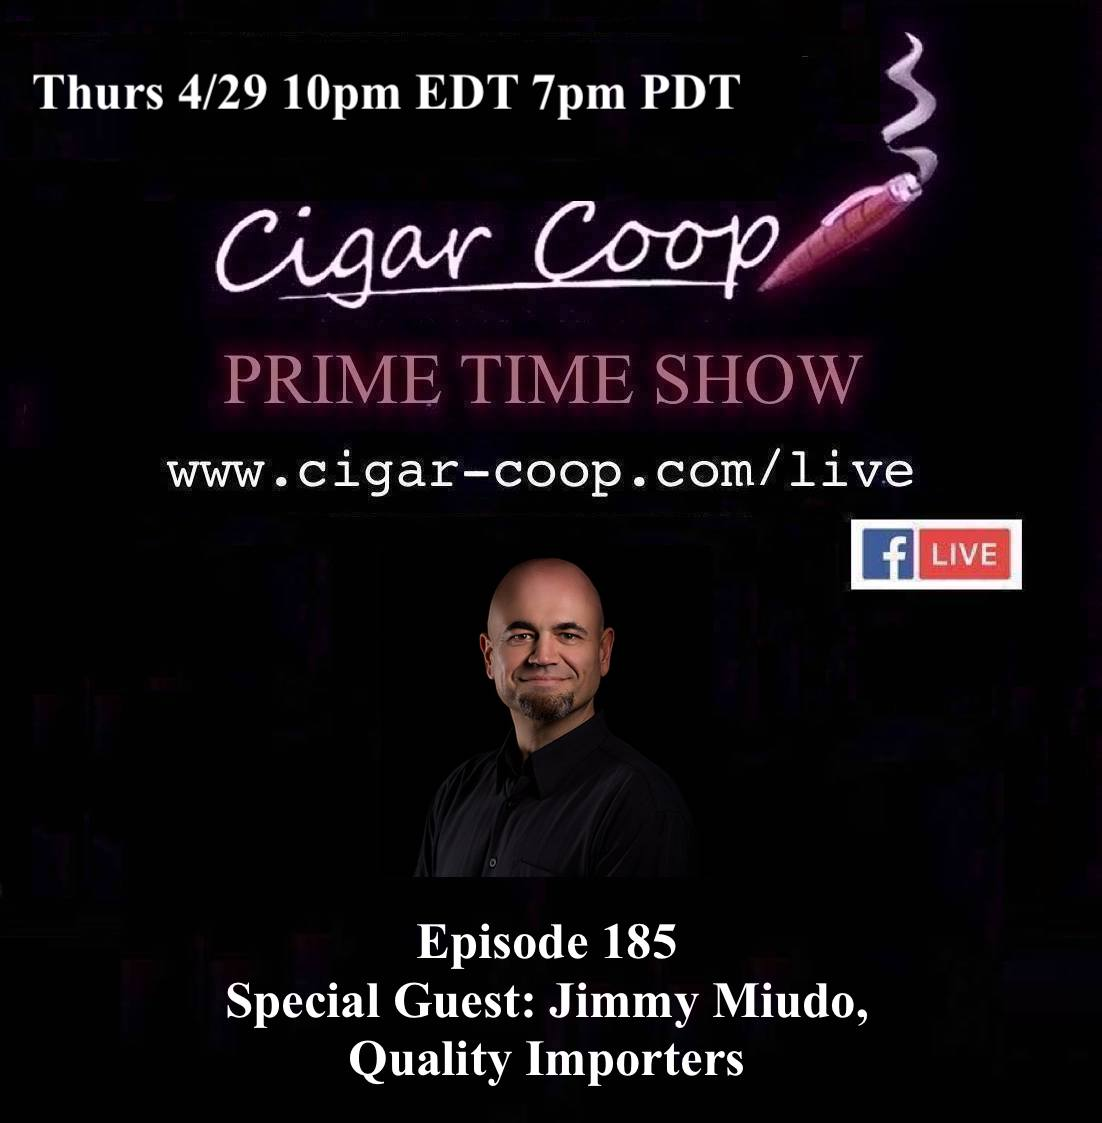 Announcement: Prime Time Episode 185 – Jimmy Miudo, Quality Importers